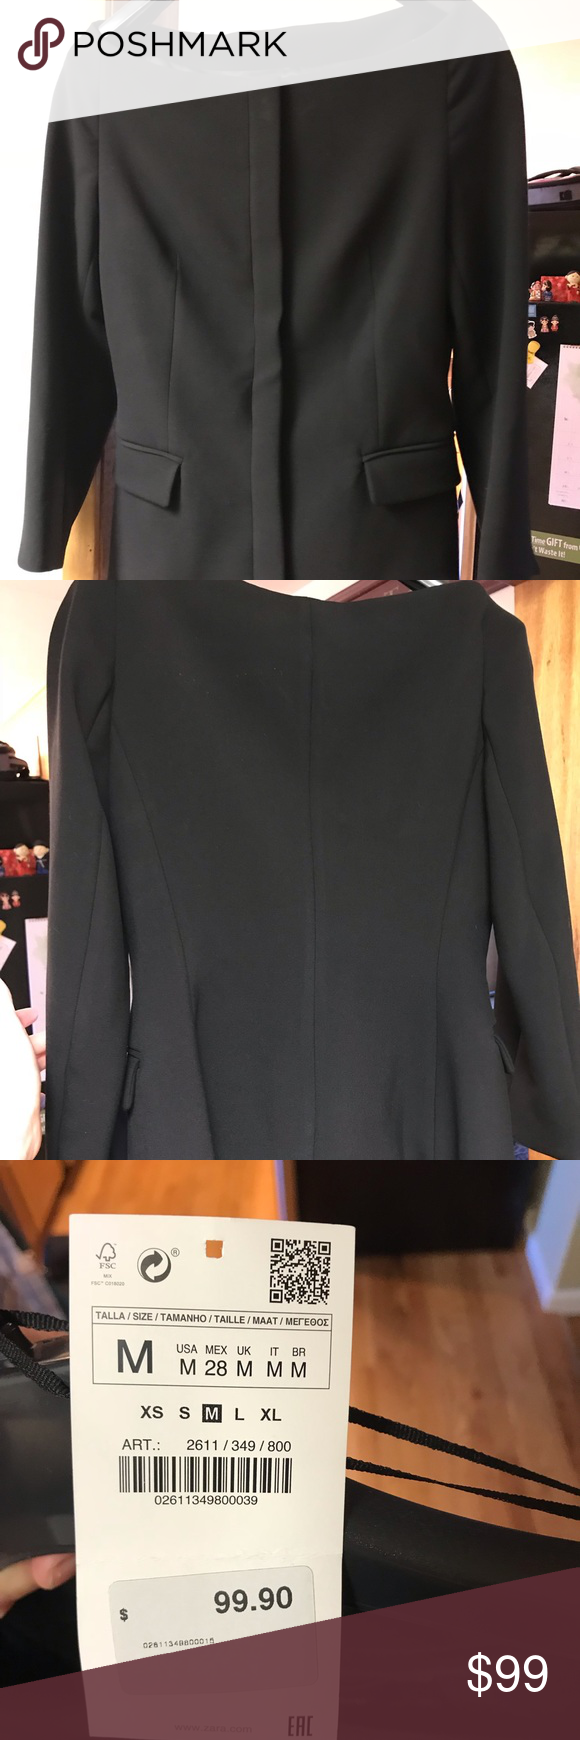 88ce0e27f5 Zara Boat-Neck Black Blazer (NWT) This blazer is beautiful